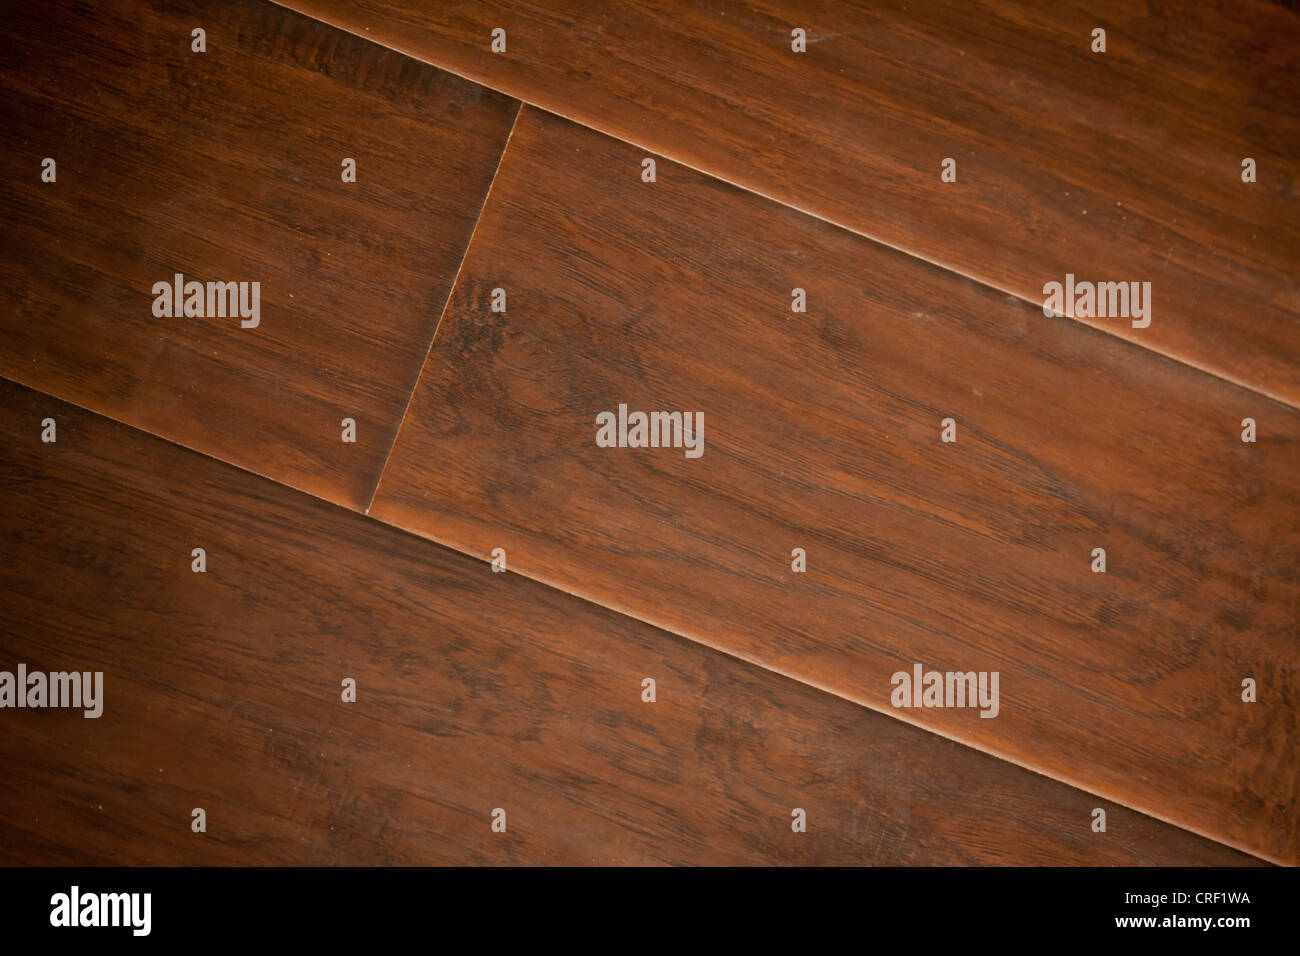 Newly Installed Brown Laminate Flooring Abstract. - Stock Image